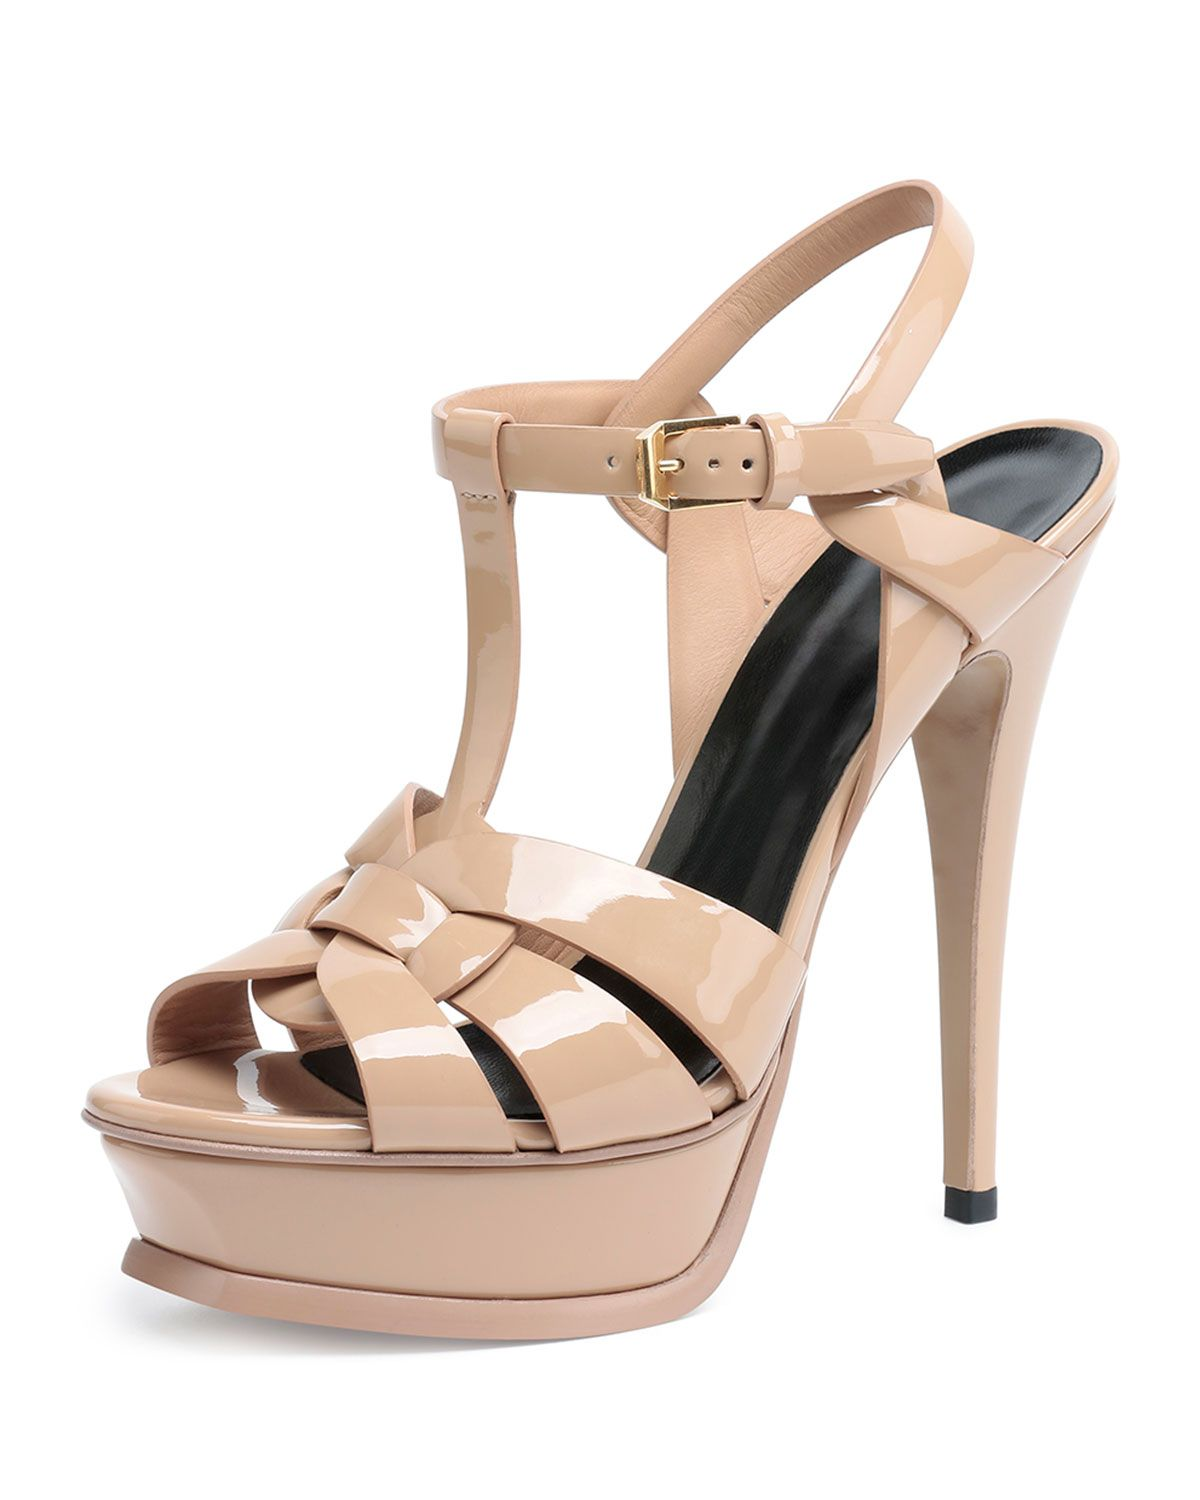 900d54792da Yves Saint Laurent Tribute Patent Leather Sandal, Dark Nude, Women's, Size:  39.5B/9.5B, Darker Nude